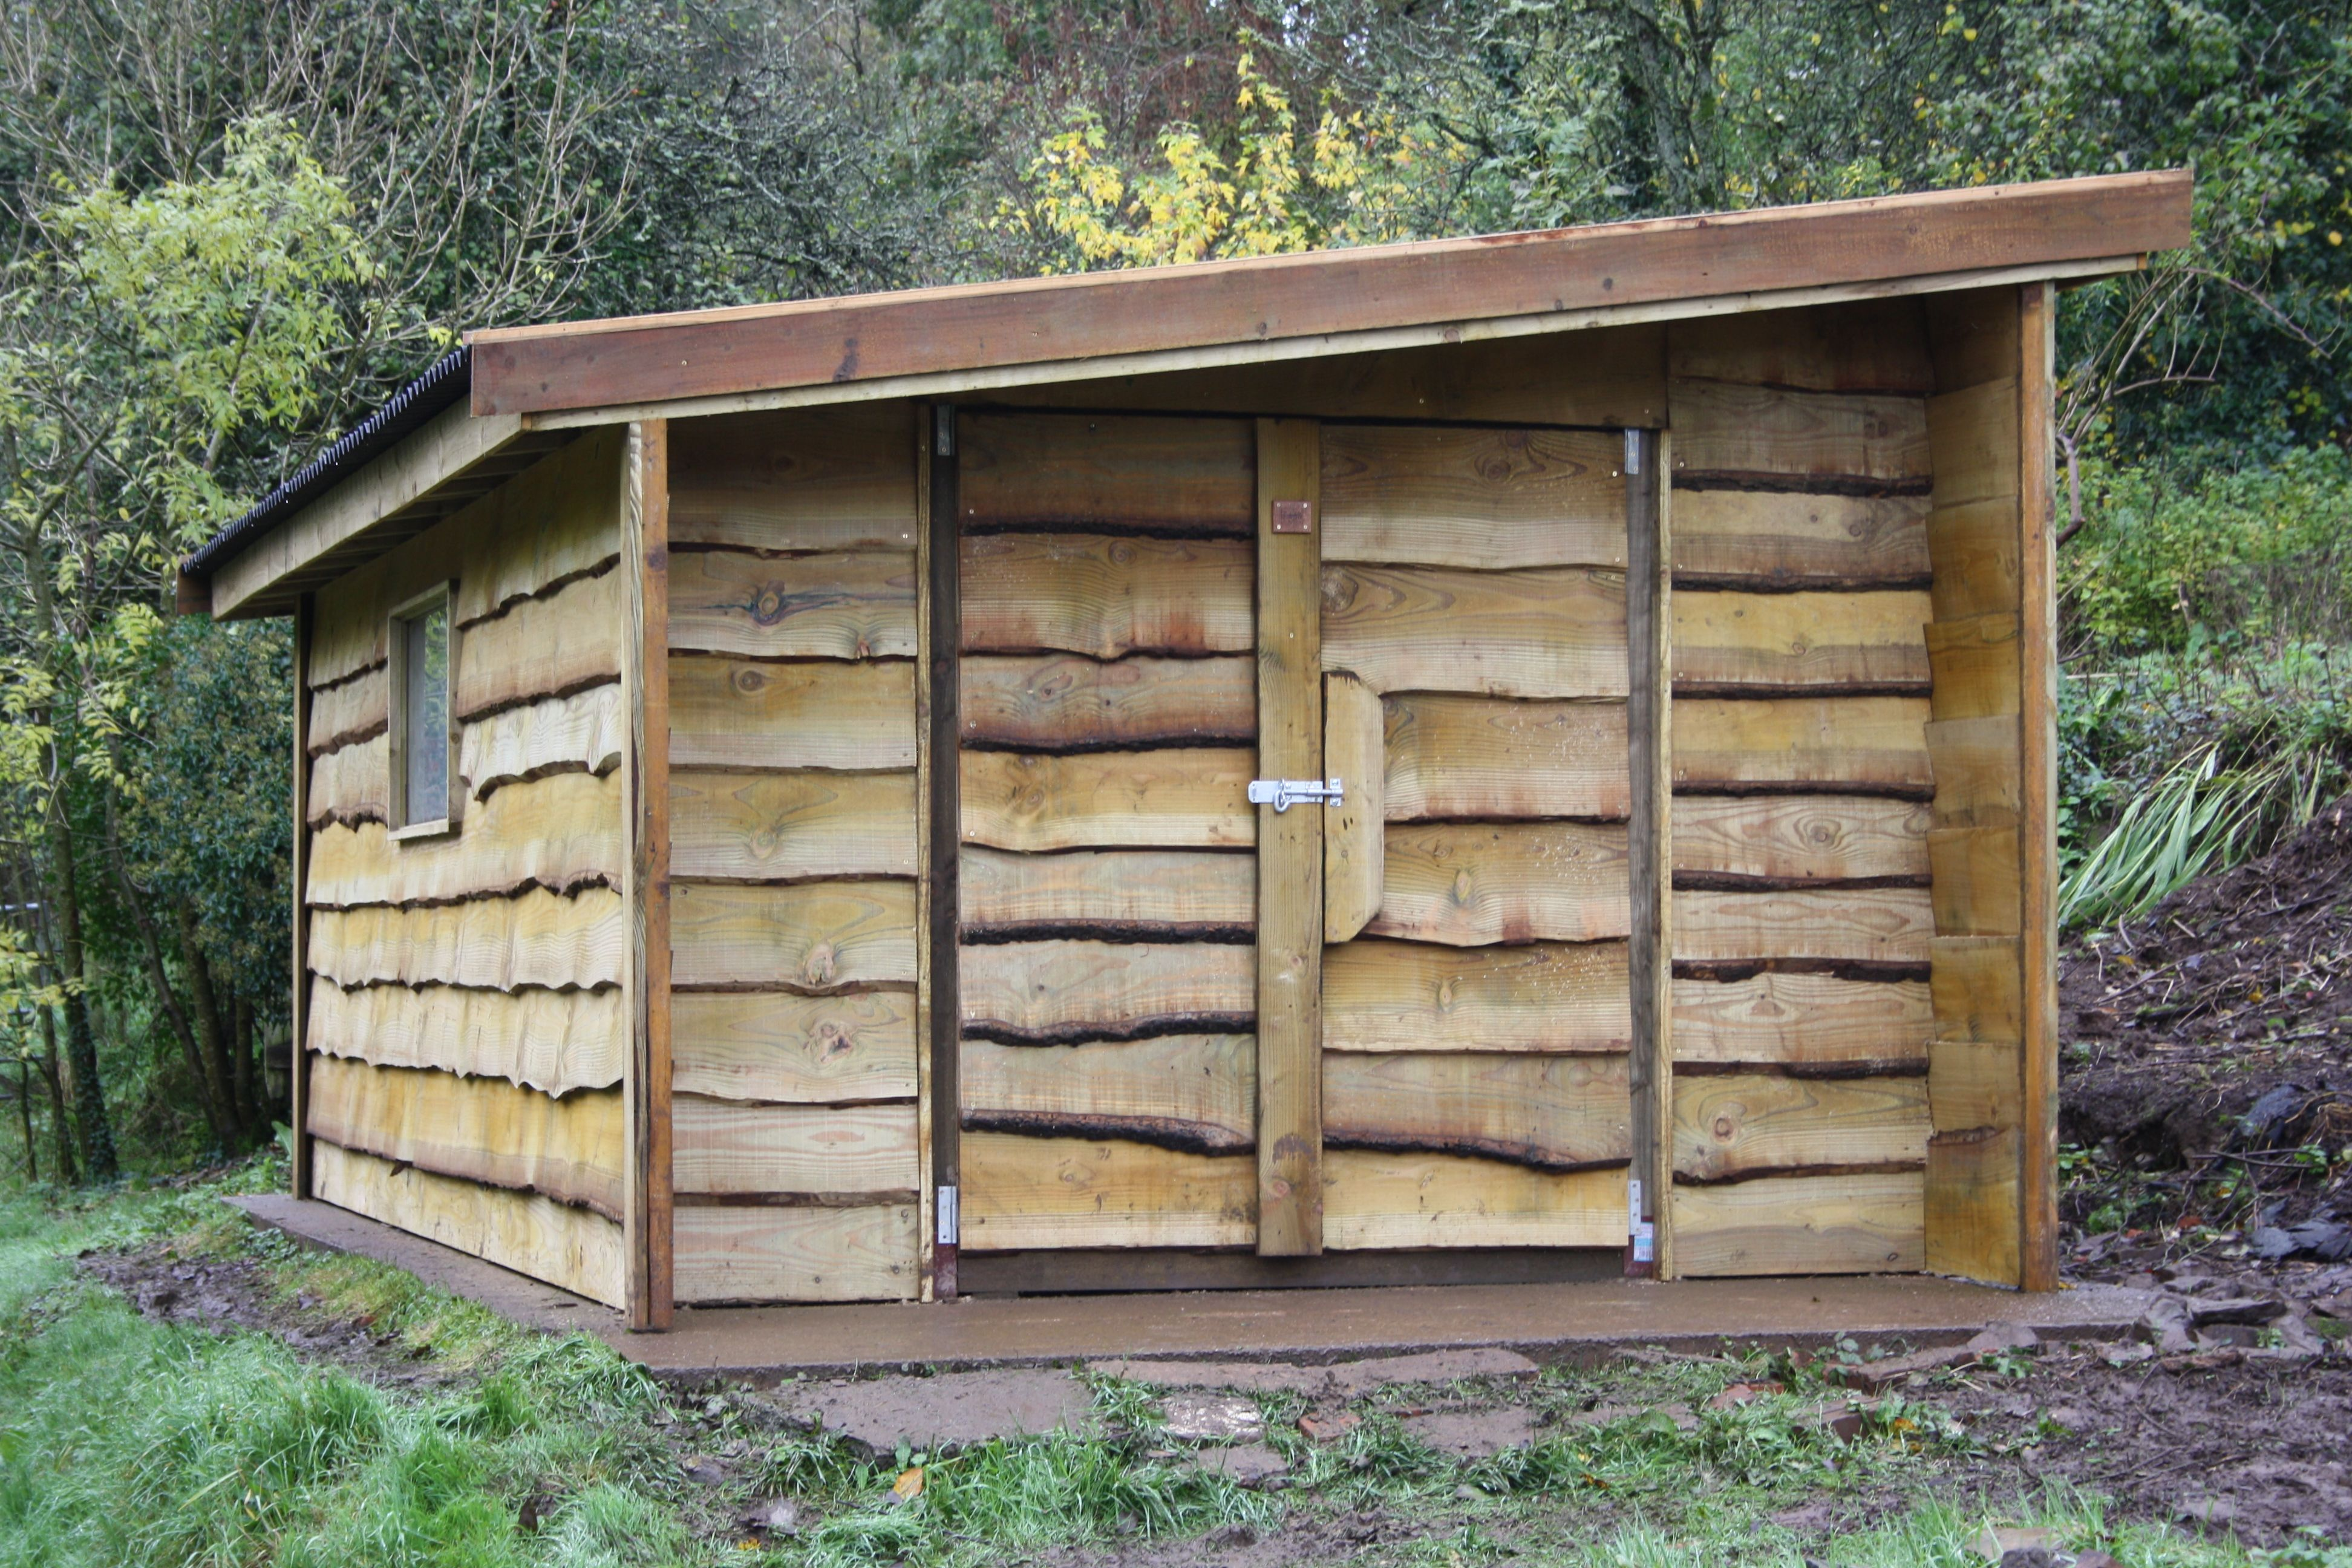 Waney edge rustic shed. The Wooden Oakford